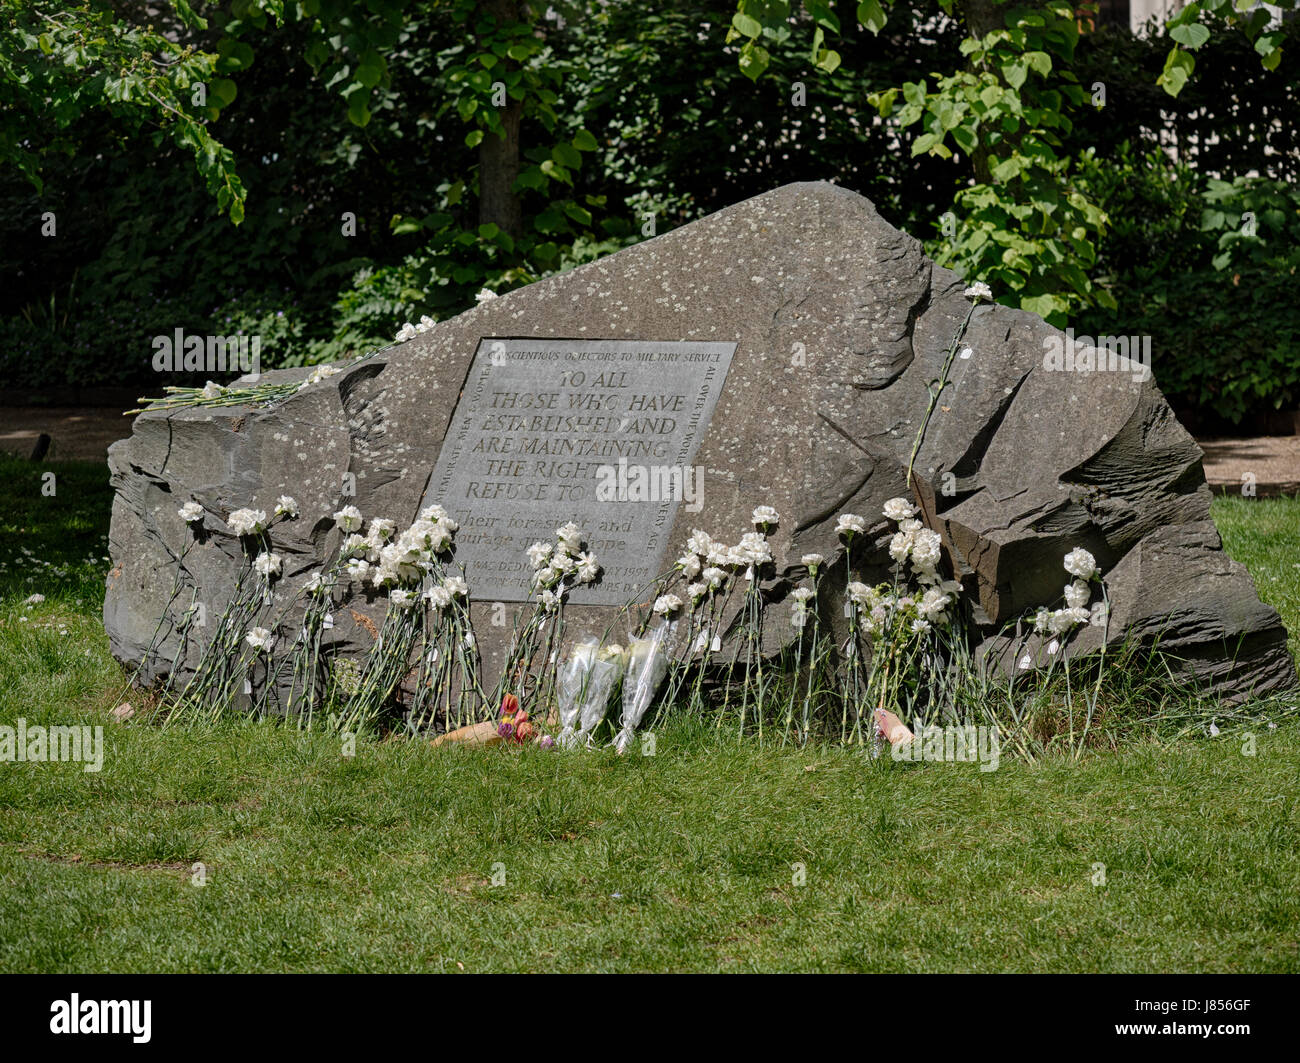 Conscientious Objectors Memorial Stone, Tavistock Square, London - Stock Image